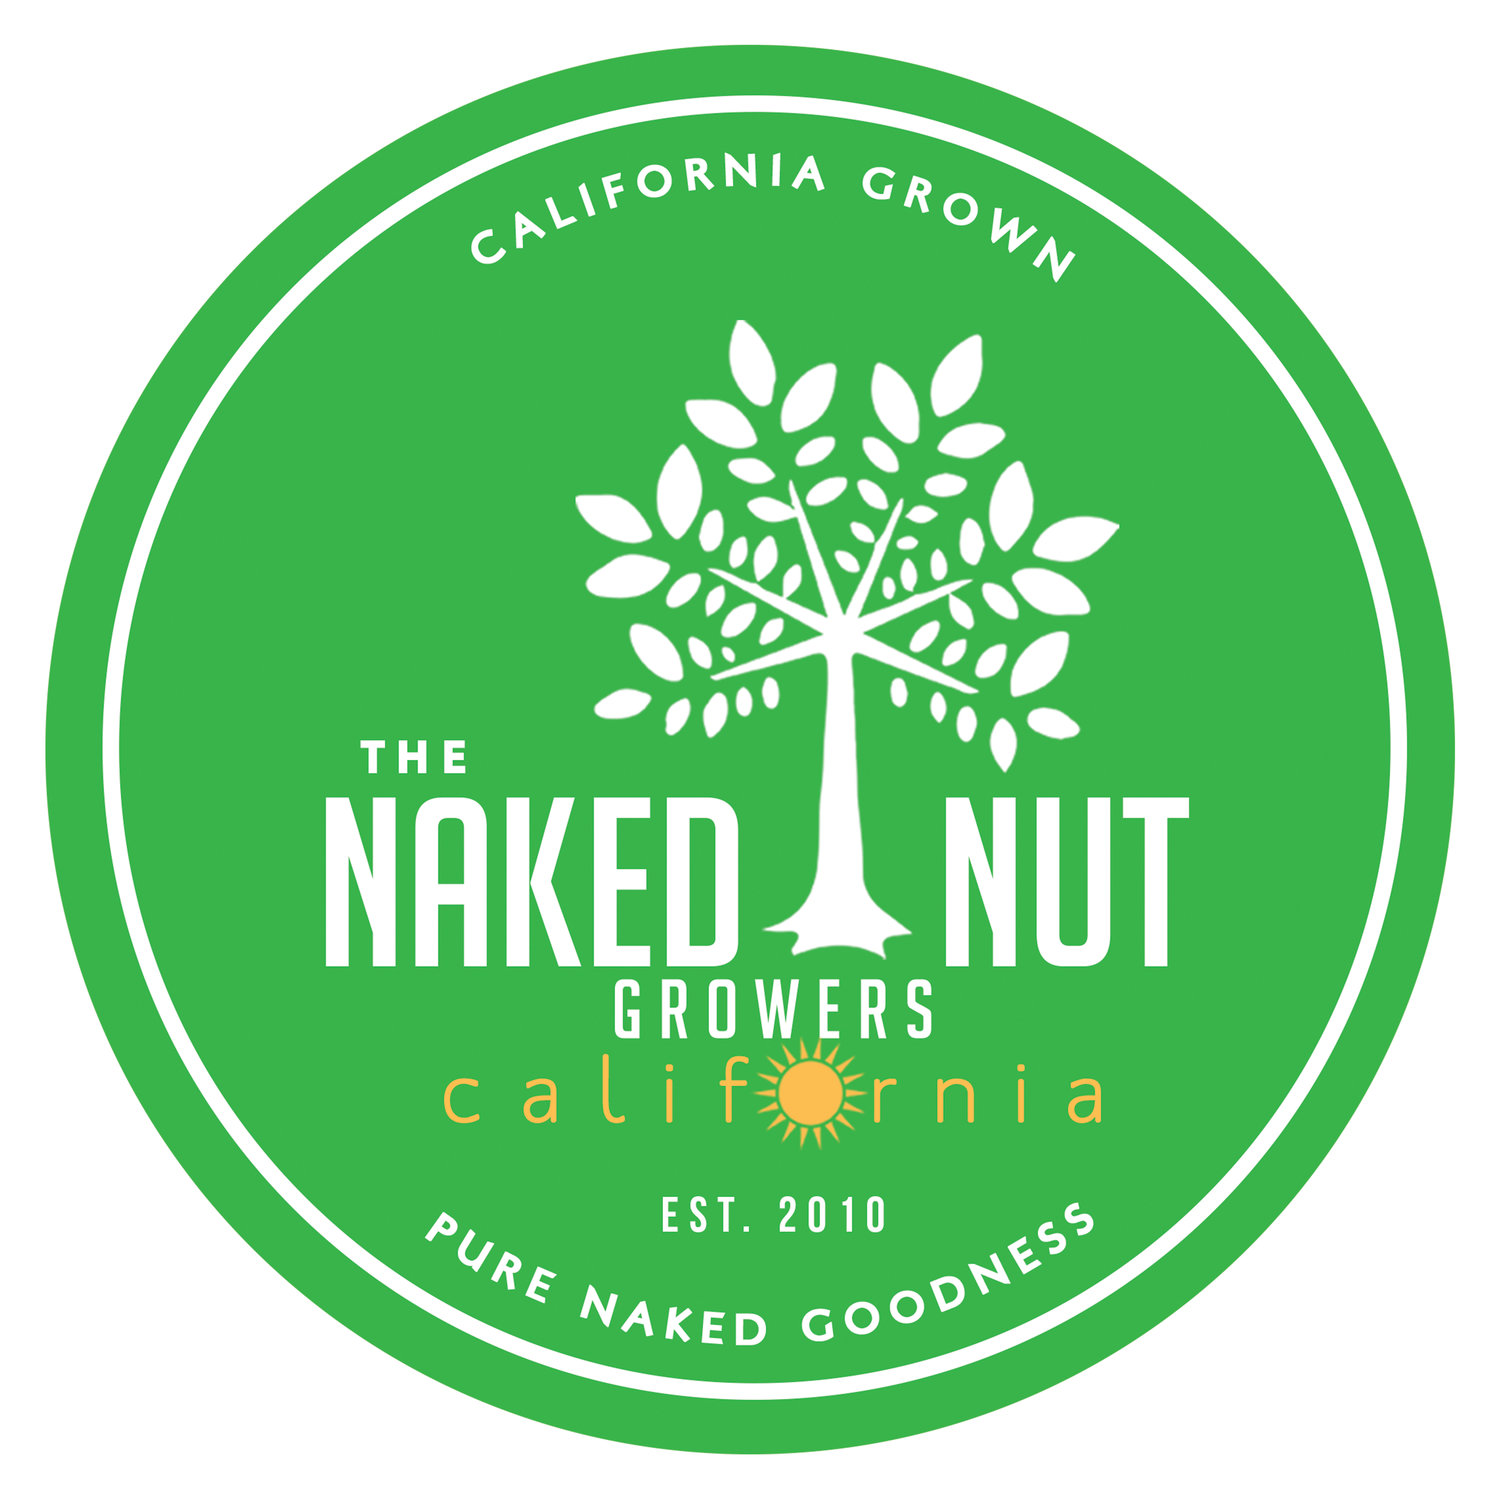 The Naked Nut Growers